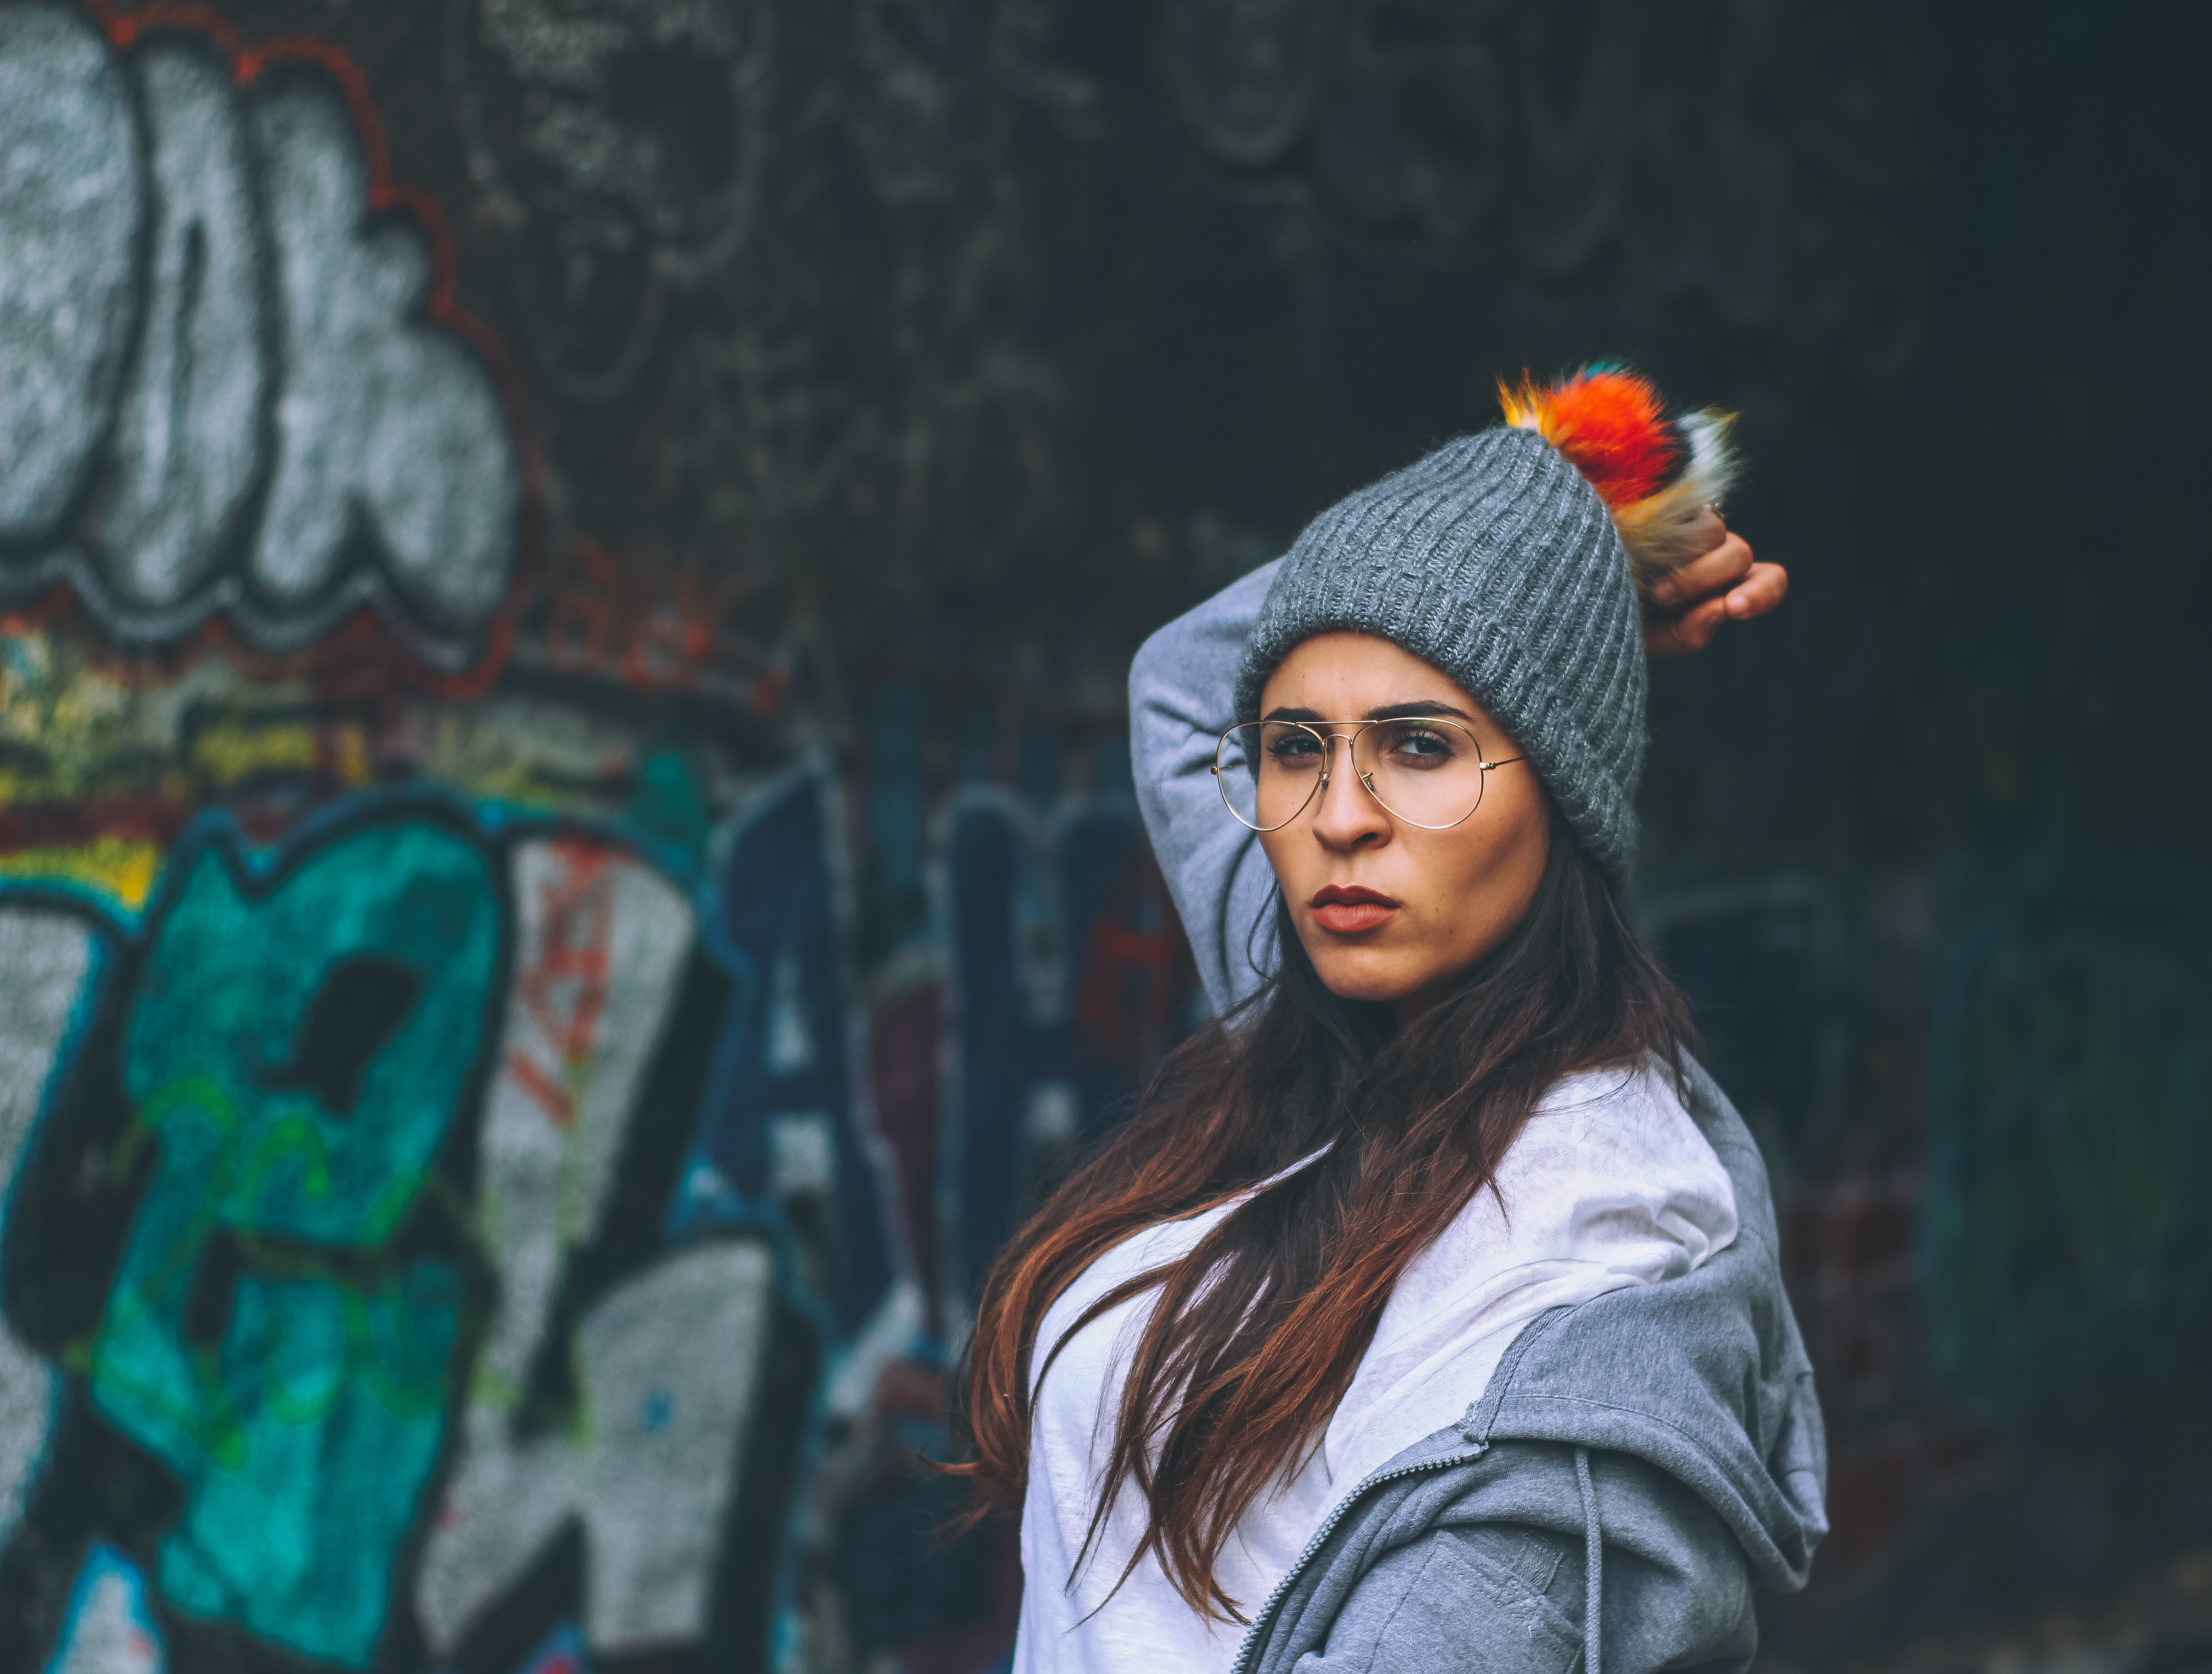 Attractive young fashion-conscious woman in grey bobble posing in front of urban wall with graffiti, Paris